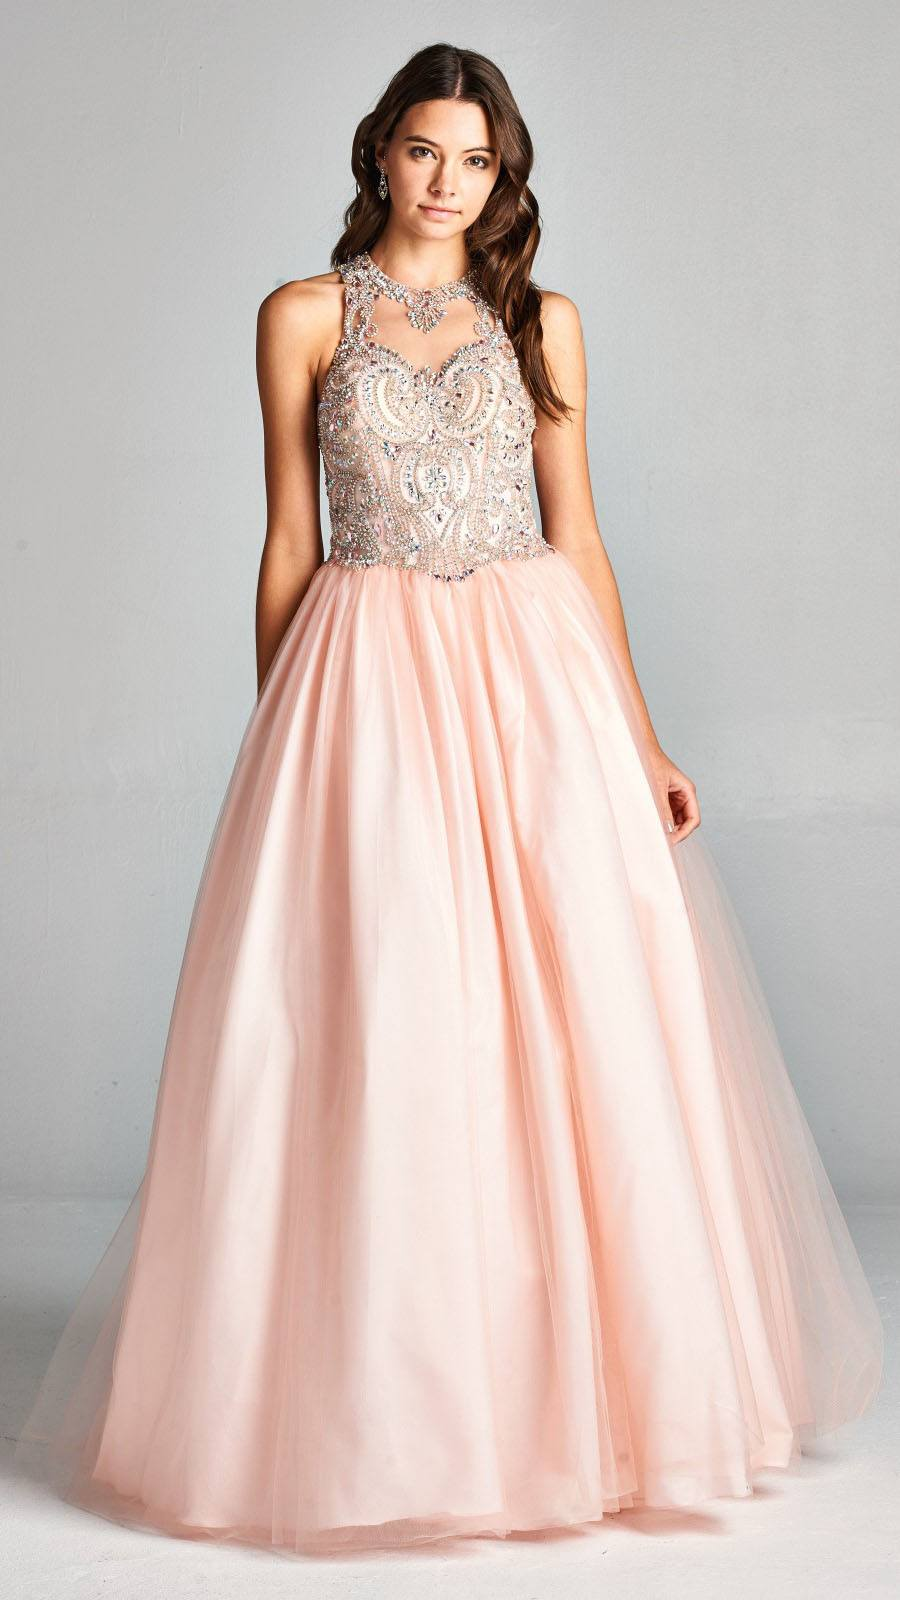 897a9524d4a Aspeed L1898 Blush Quinceanera Dress Illusion Halter Beaded Neckline ...